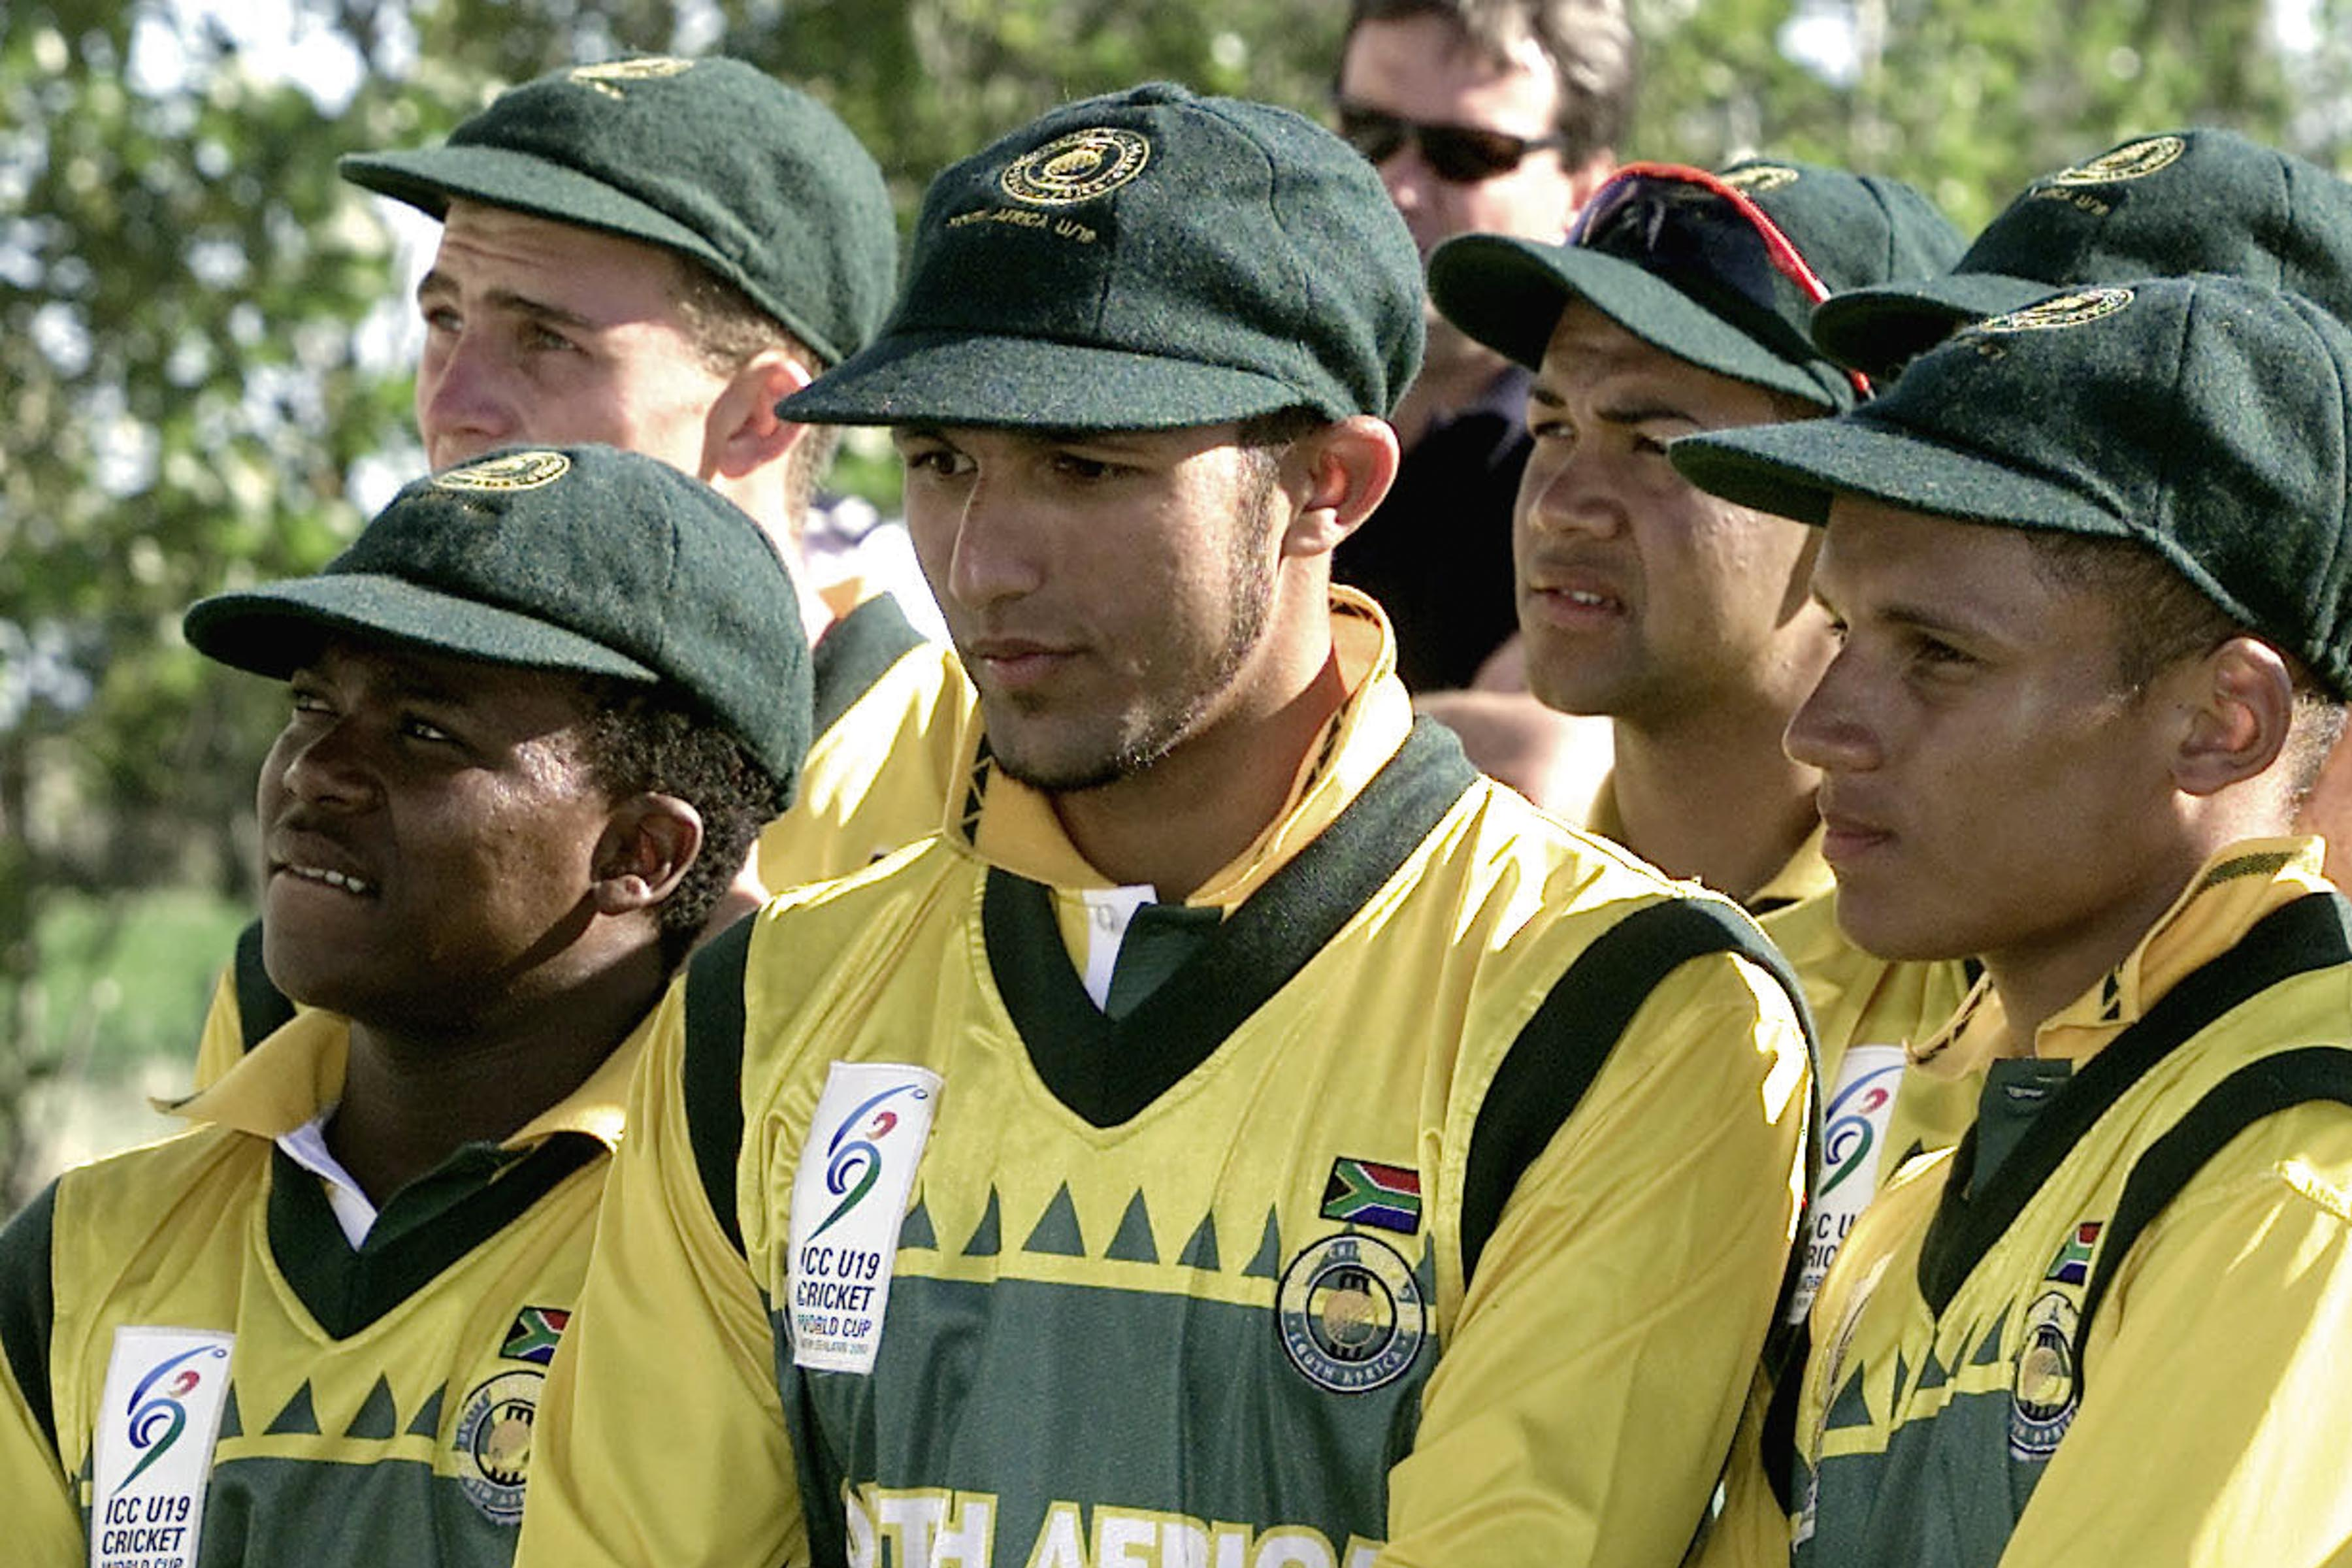 9 February 2002: Under-19 captain Hashim Amla (centre) at the trophy presentation of the Under-19 Cricket World Cup. South Africa lost to Australia in the final at the Bert Sutcliffe Oval in Christchurch, New Zealand. (Photograph by Nigel Marple/Getty Images)